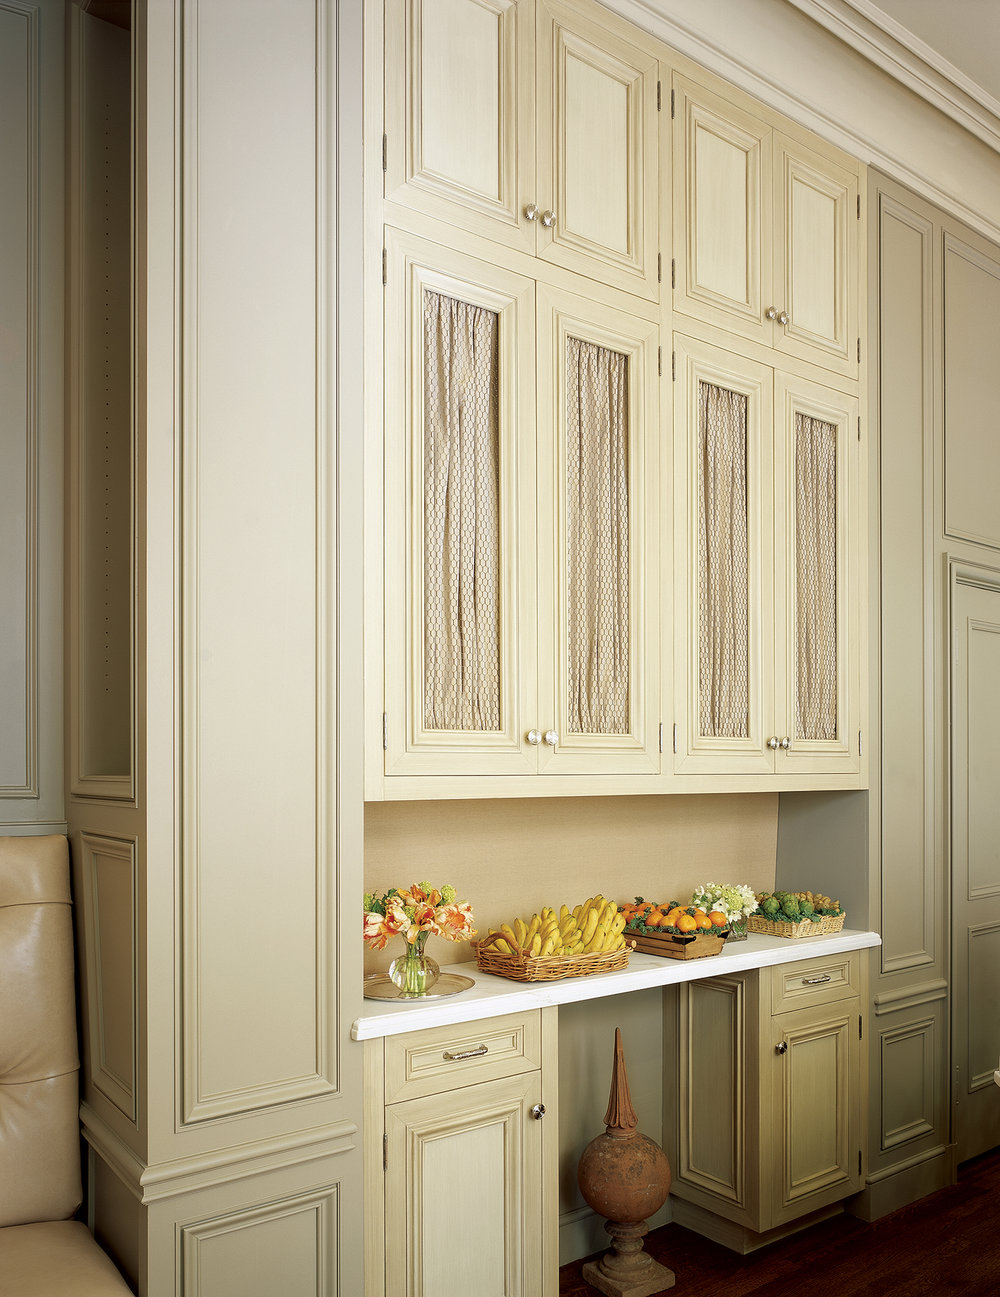 Copy-of-KitchenCabinets-w.jpg